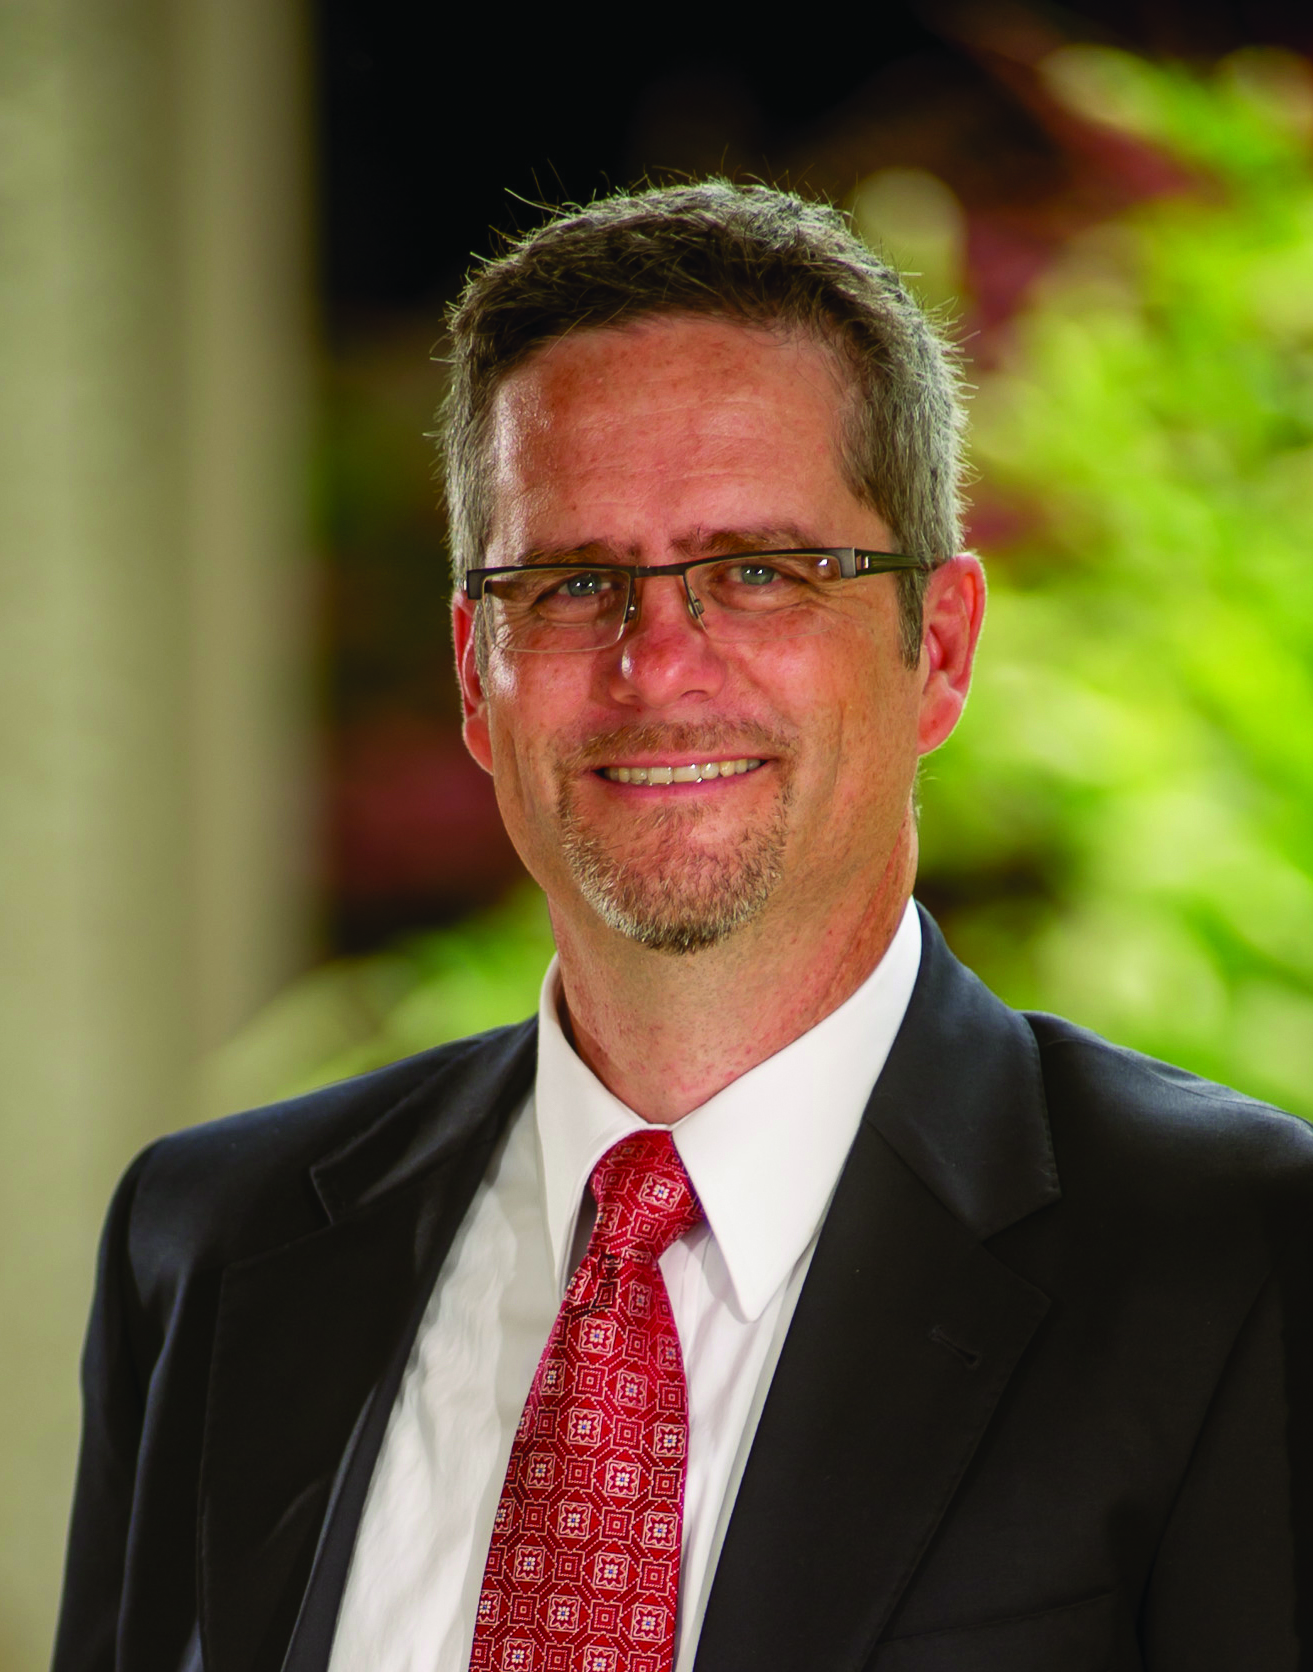 Lake Land College President Josh Bullock Discusses Their Workforce Ready Programs in Letter to Public